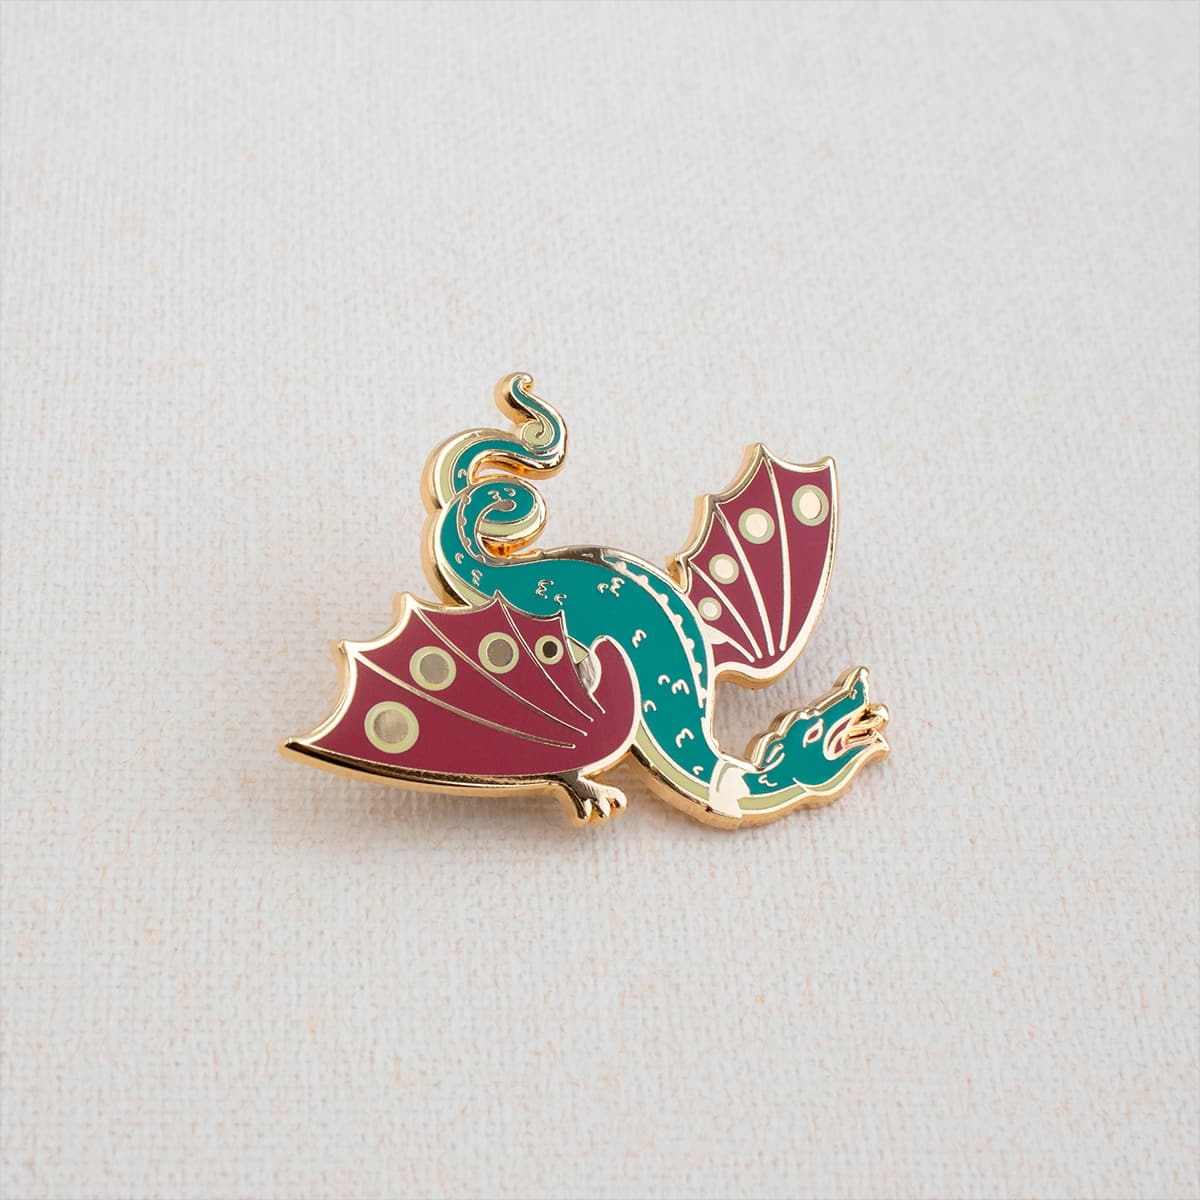 Field Dragon Enamel Pin By Oh Jessica Jessica